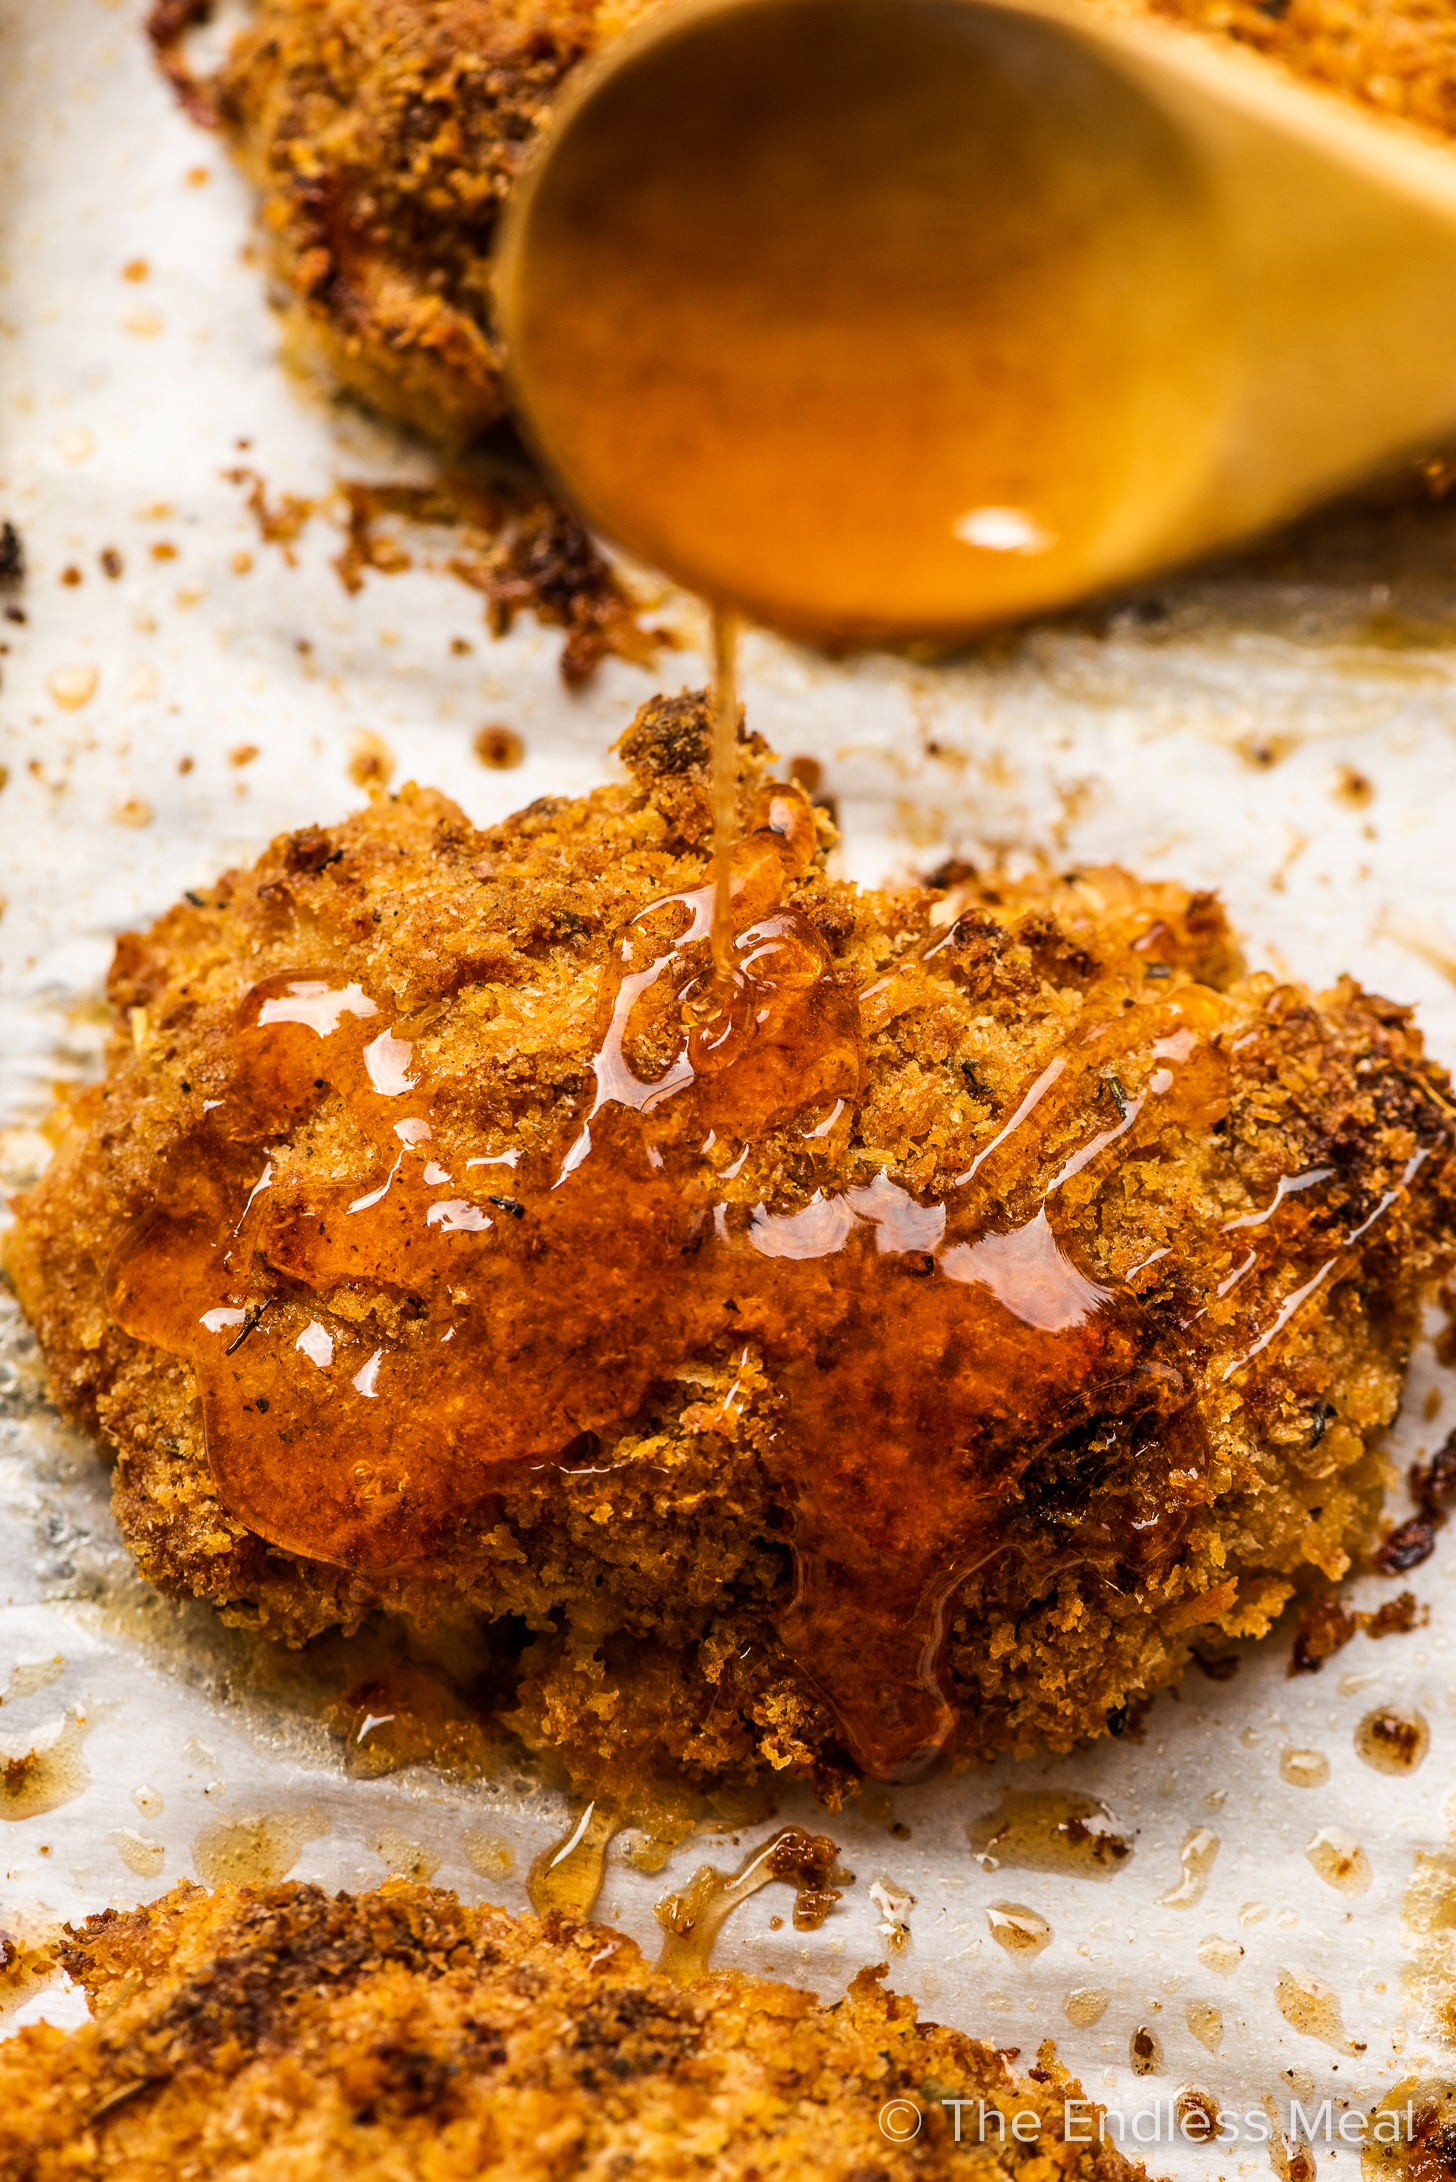 Hot honey being drizzled over crispy chicken.